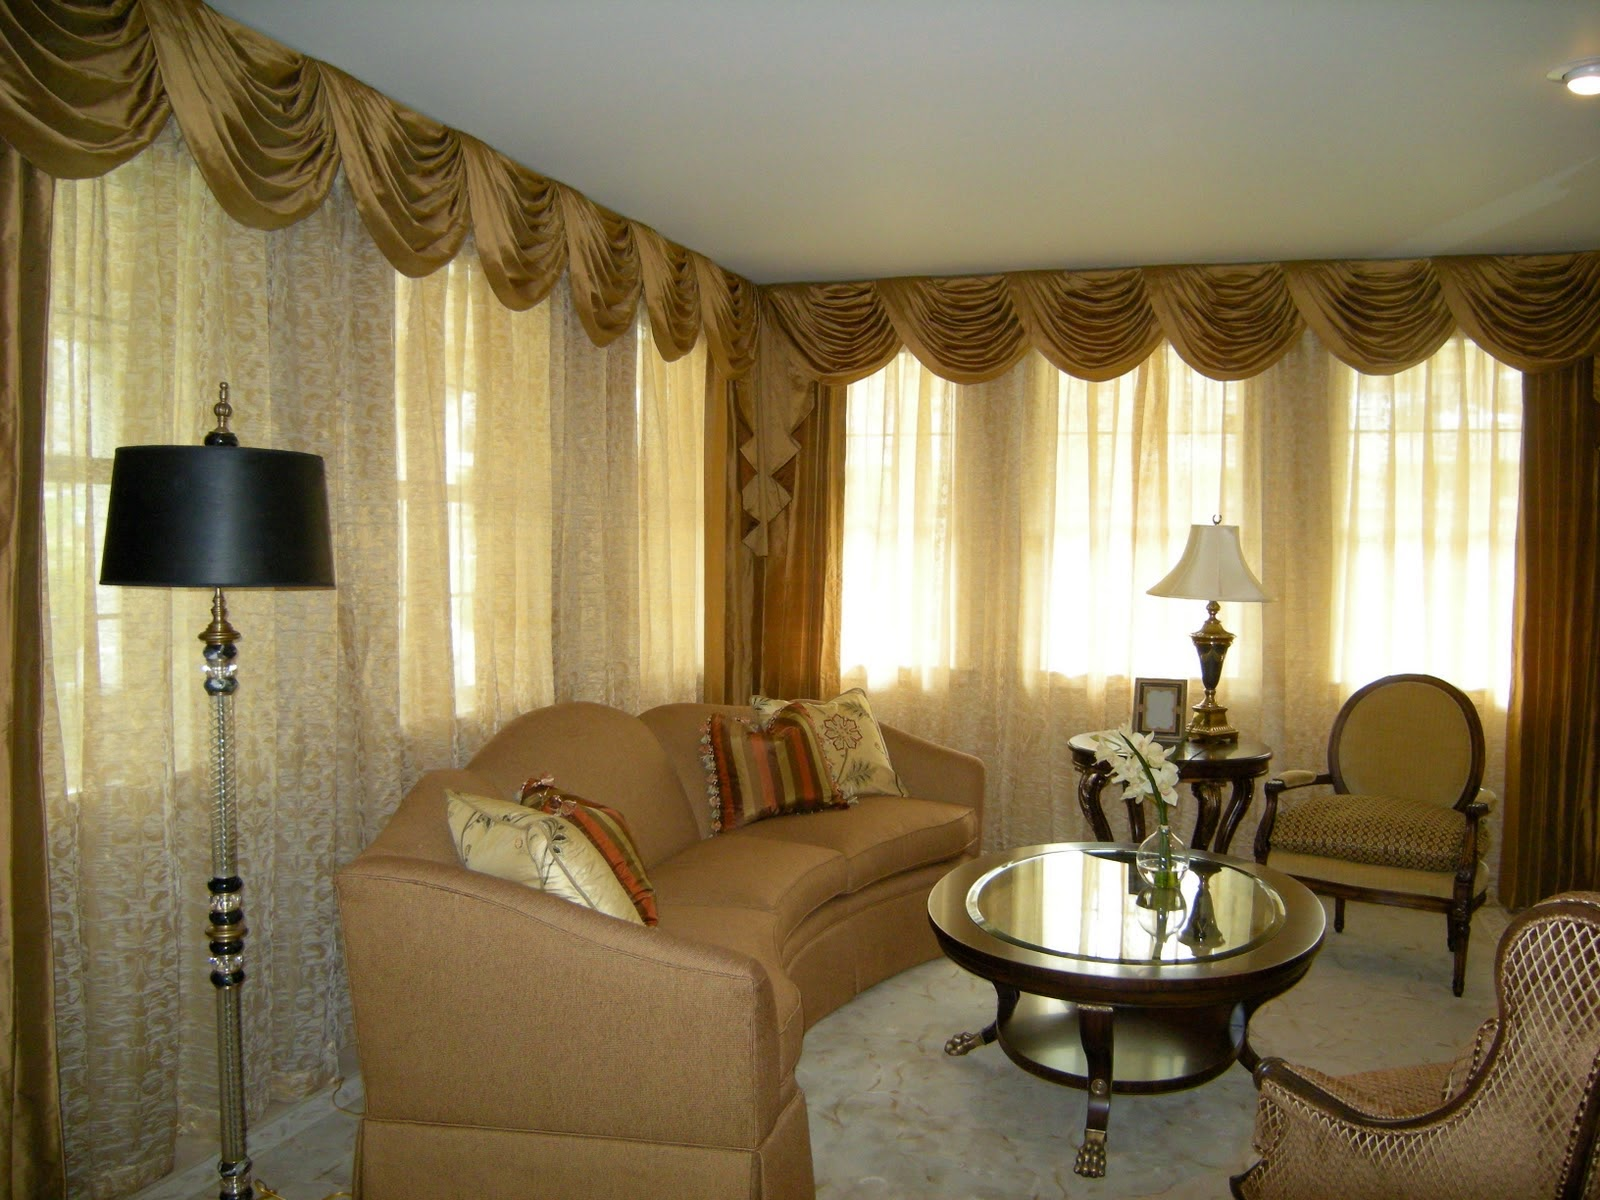 How to Choose Curtains Styles According to House Architecture